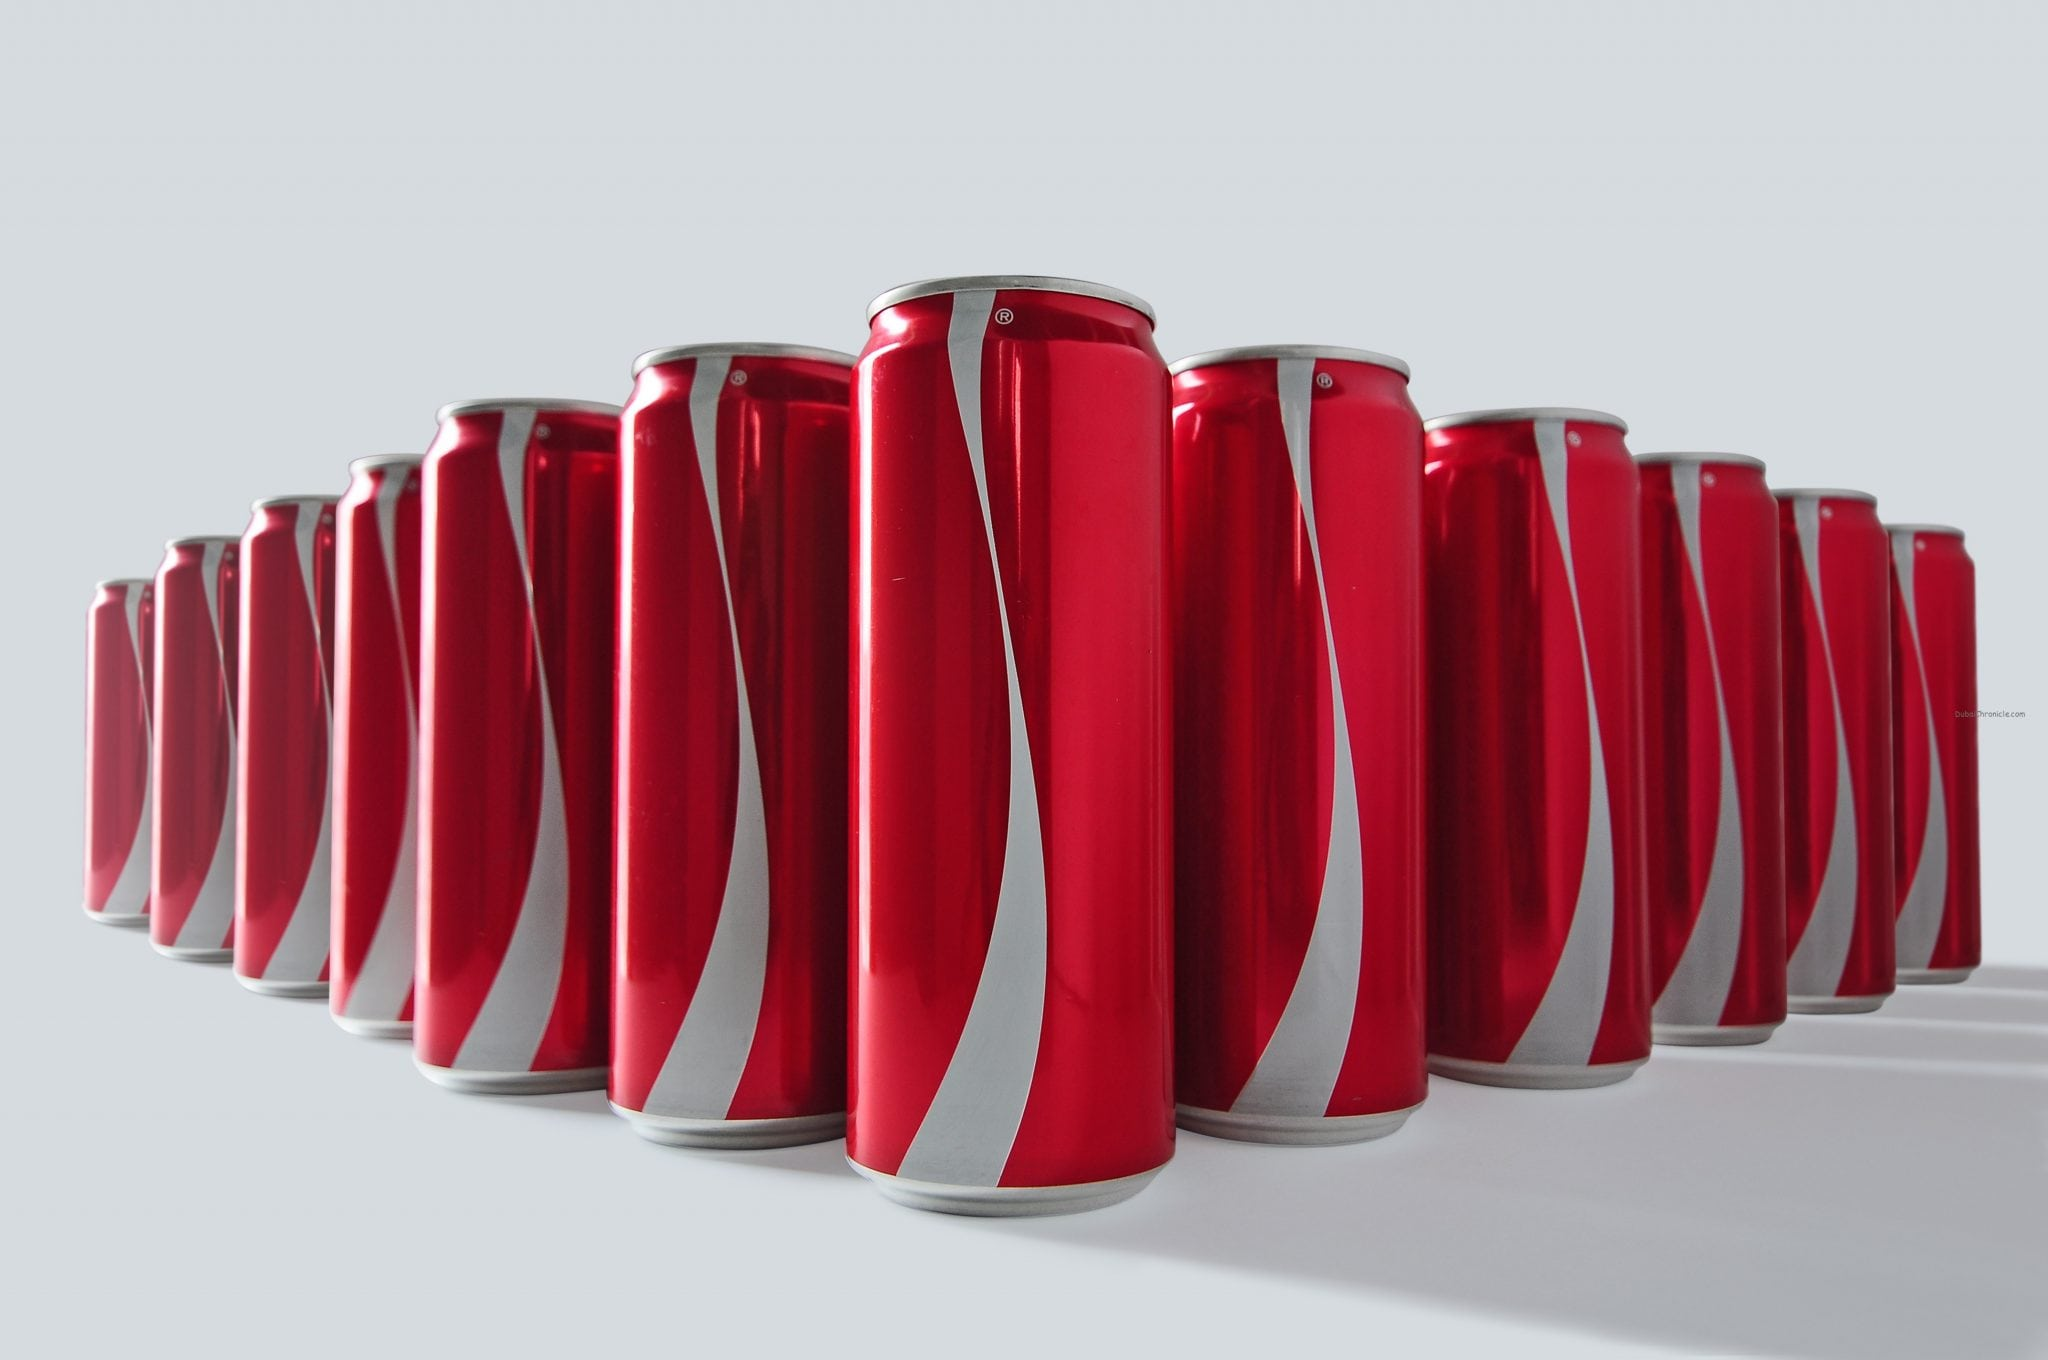 Row of no label cans